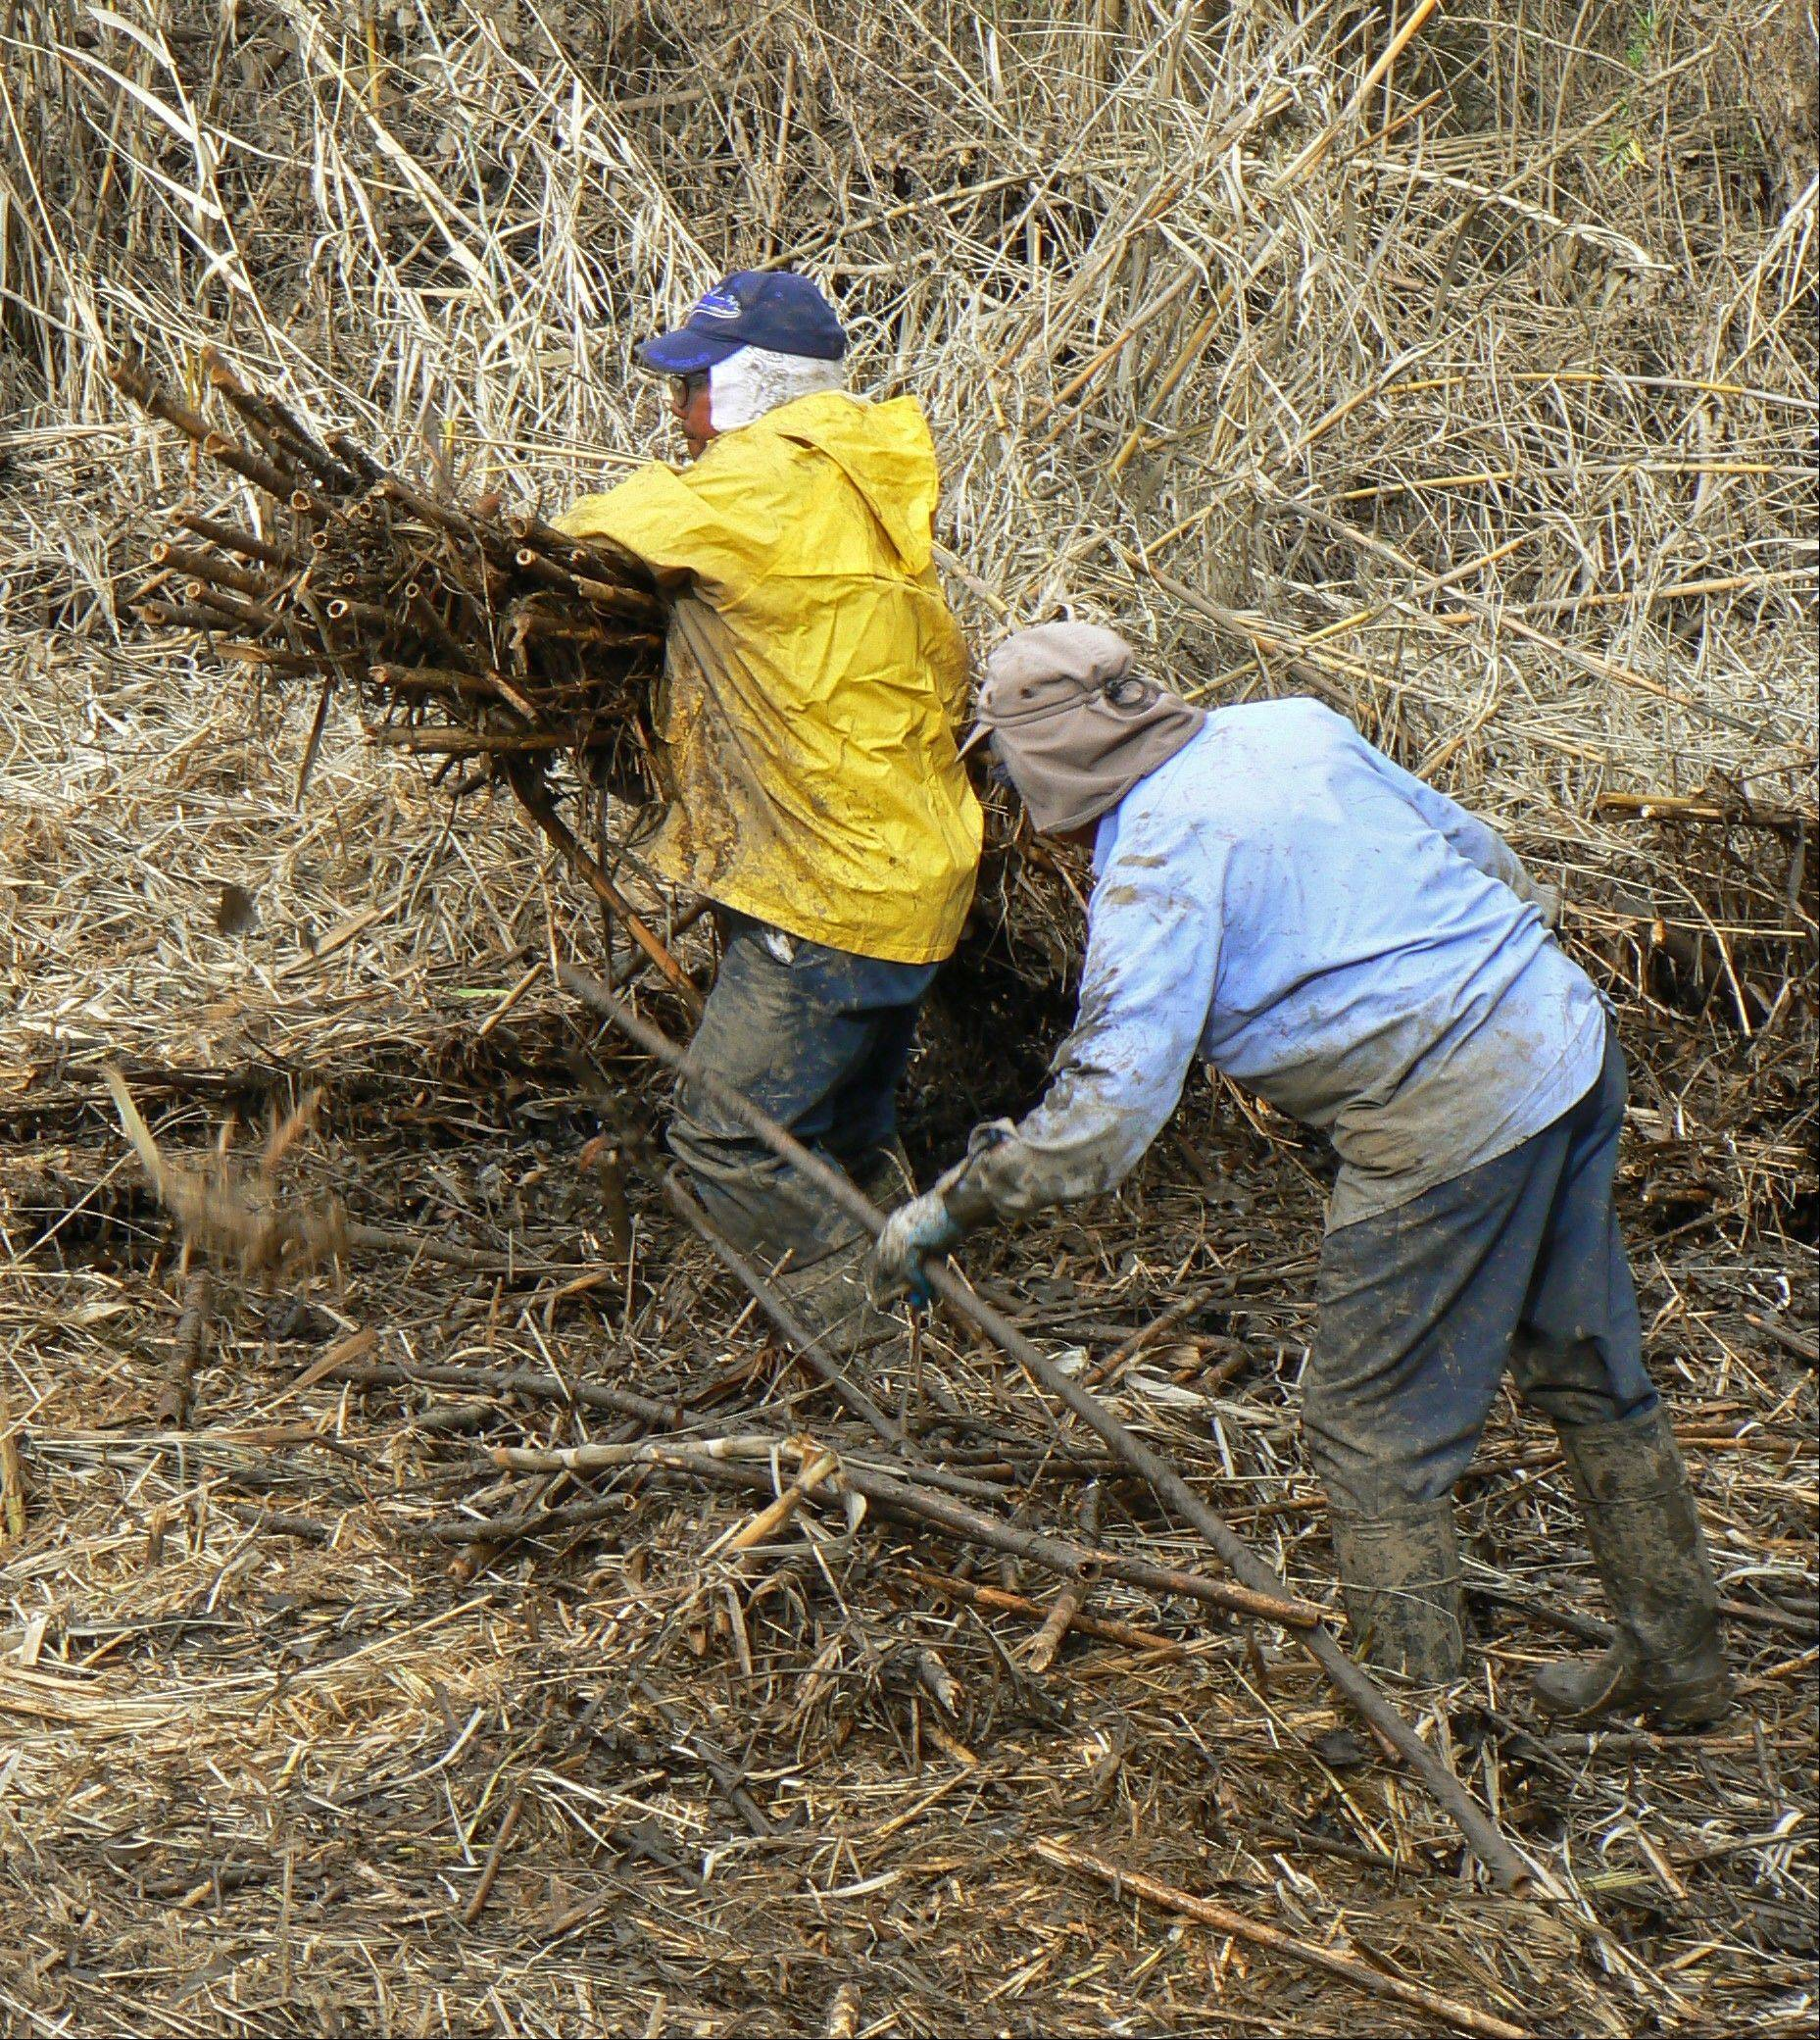 Crews cut and haul Arundo donax to higher areas where mowers can grind it in Bonsall, Calif. California has spent more than $70 million trying to eradicate the invasive, self-propagating perennial.